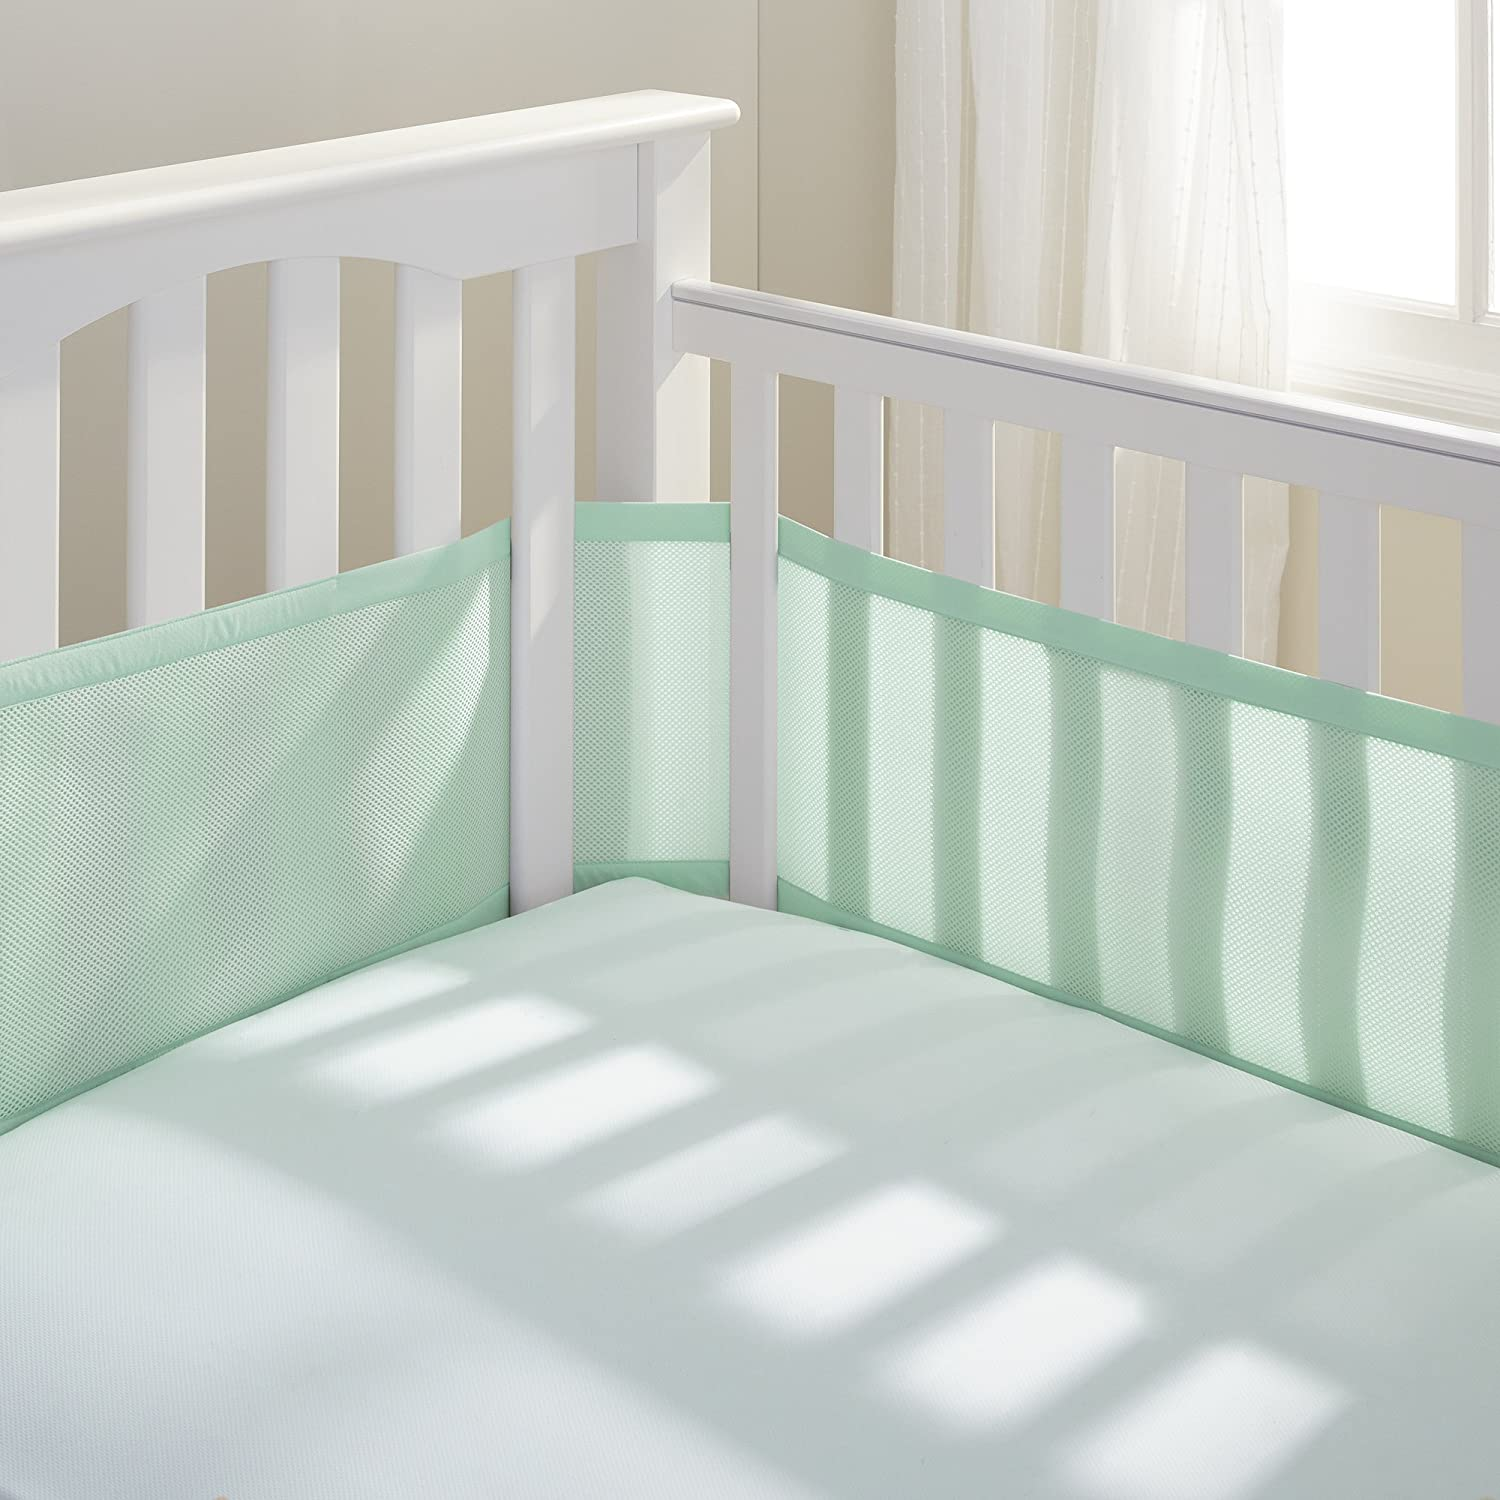 BreathableBaby Breathable Mesh Crib Liner, White (Mint Green) 10234